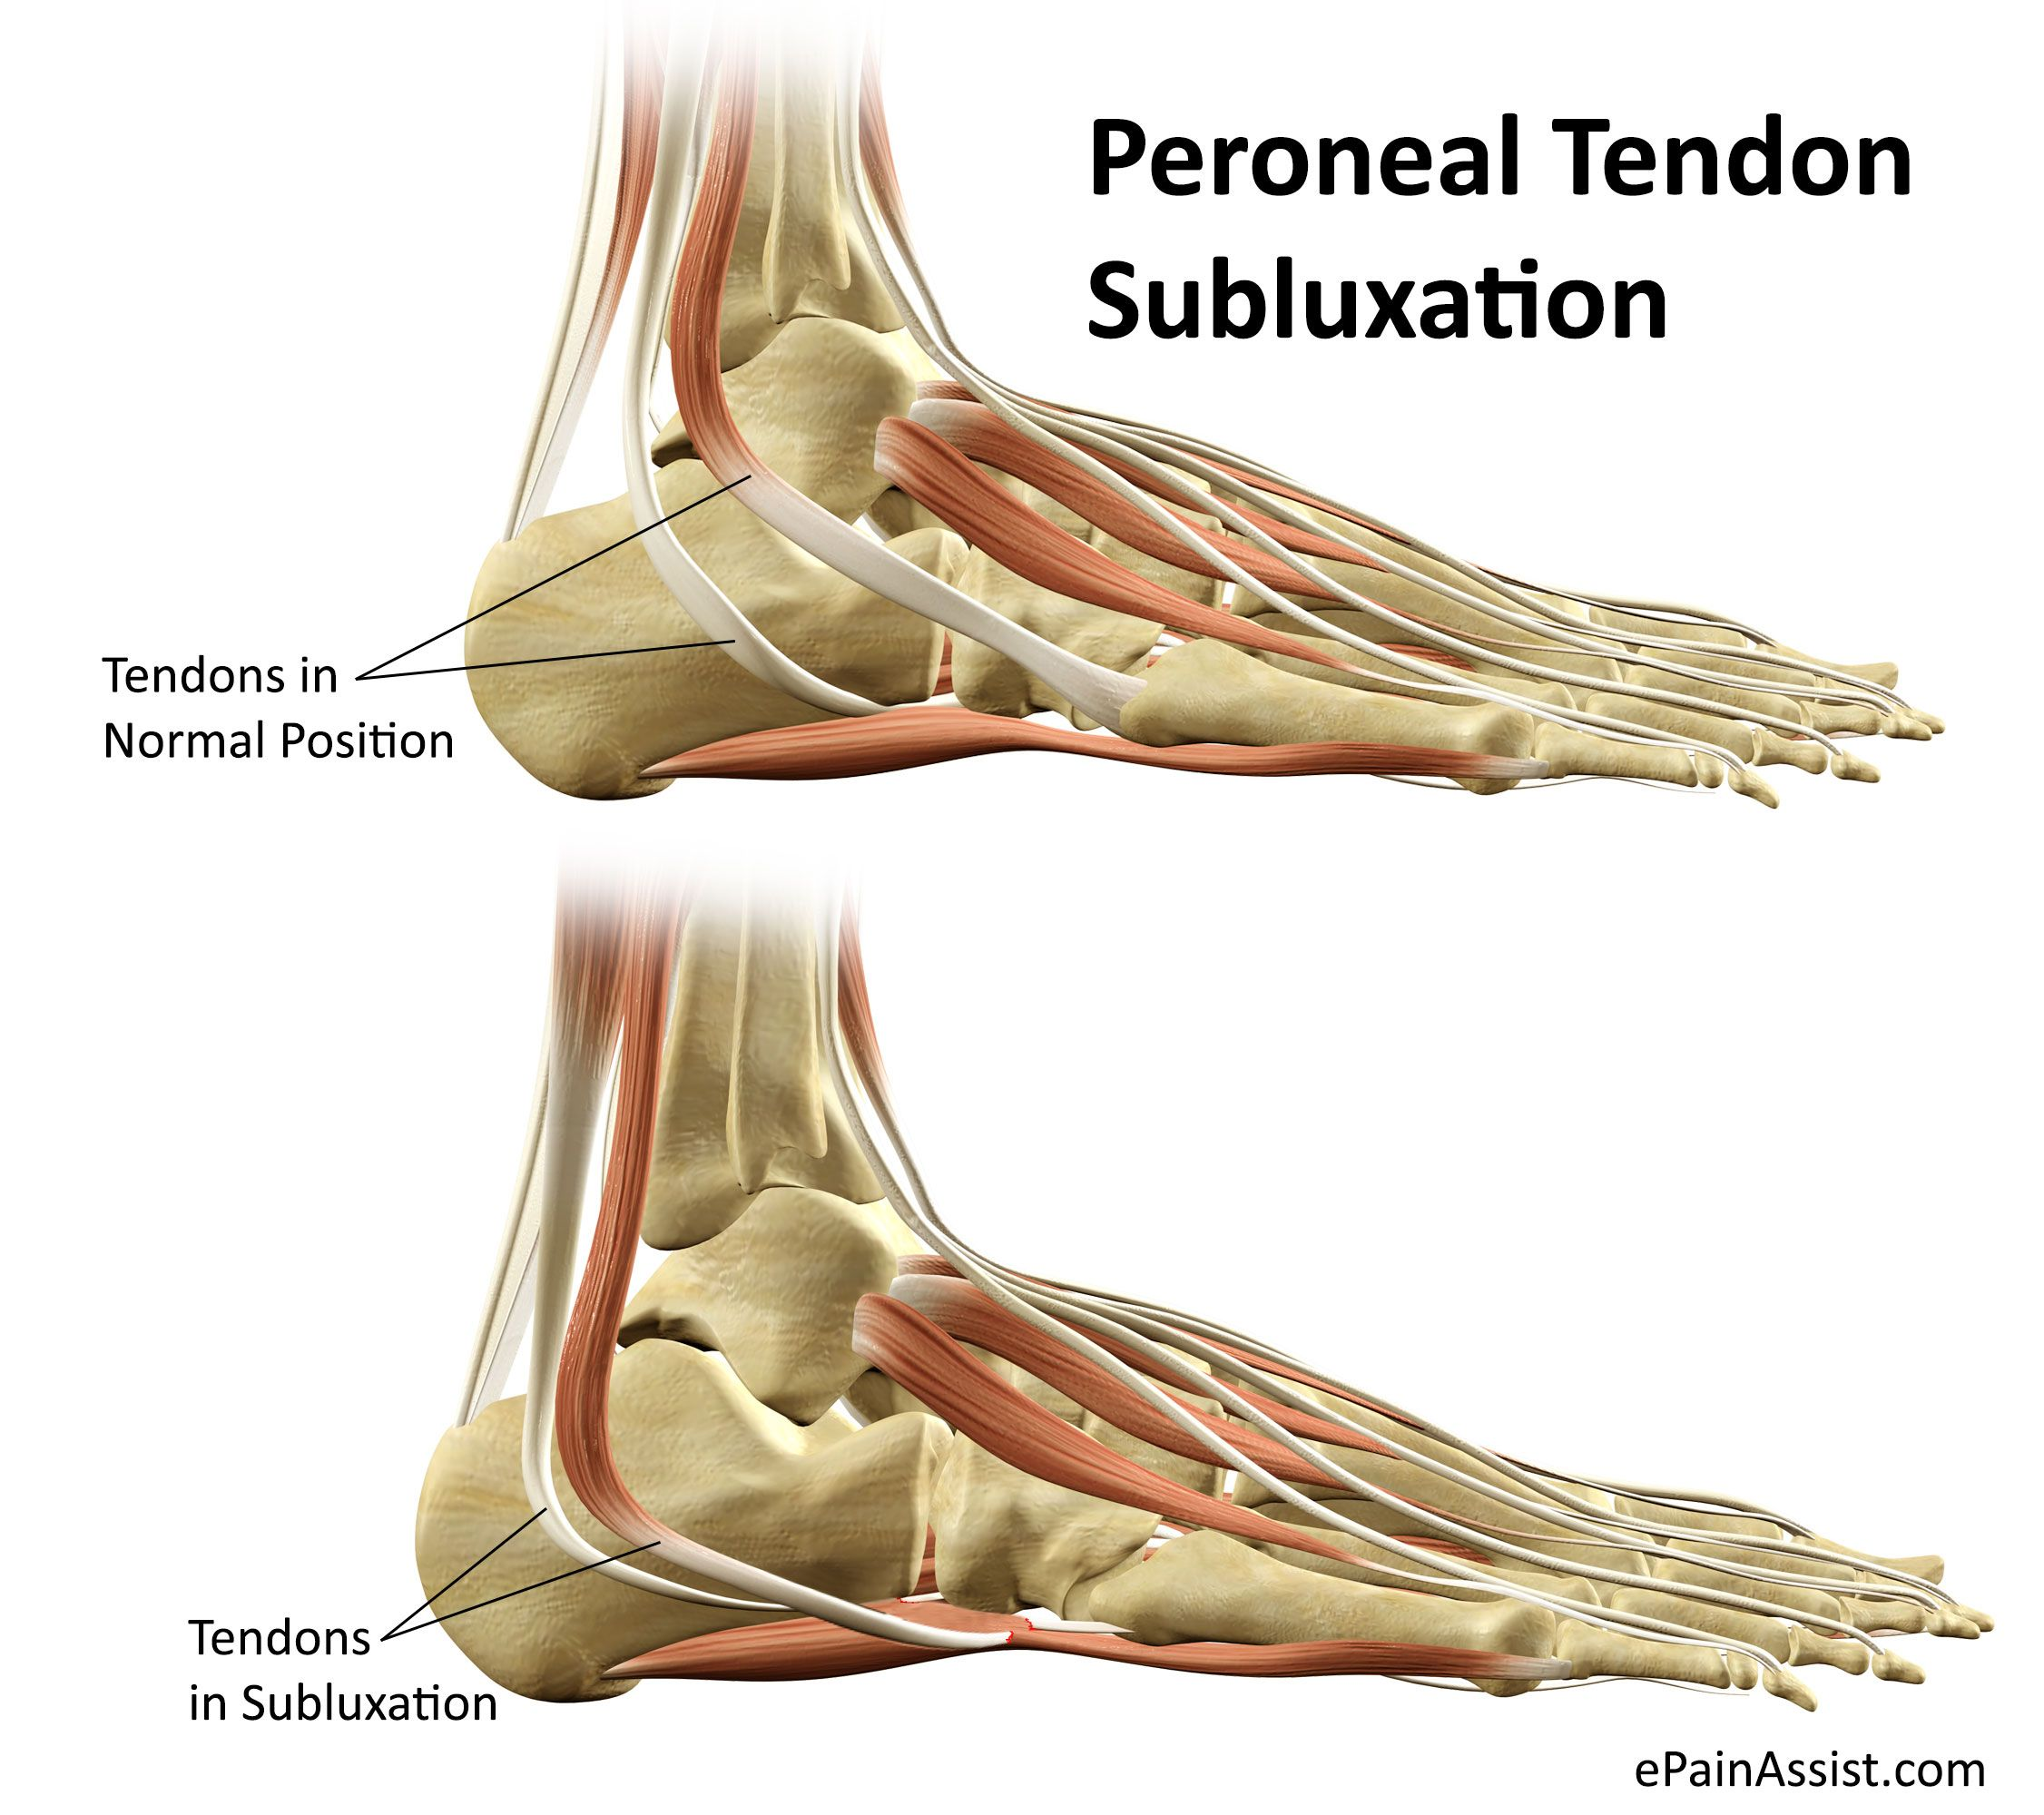 Peroneal Tendon Subluxation Treatment Recovery Exercises